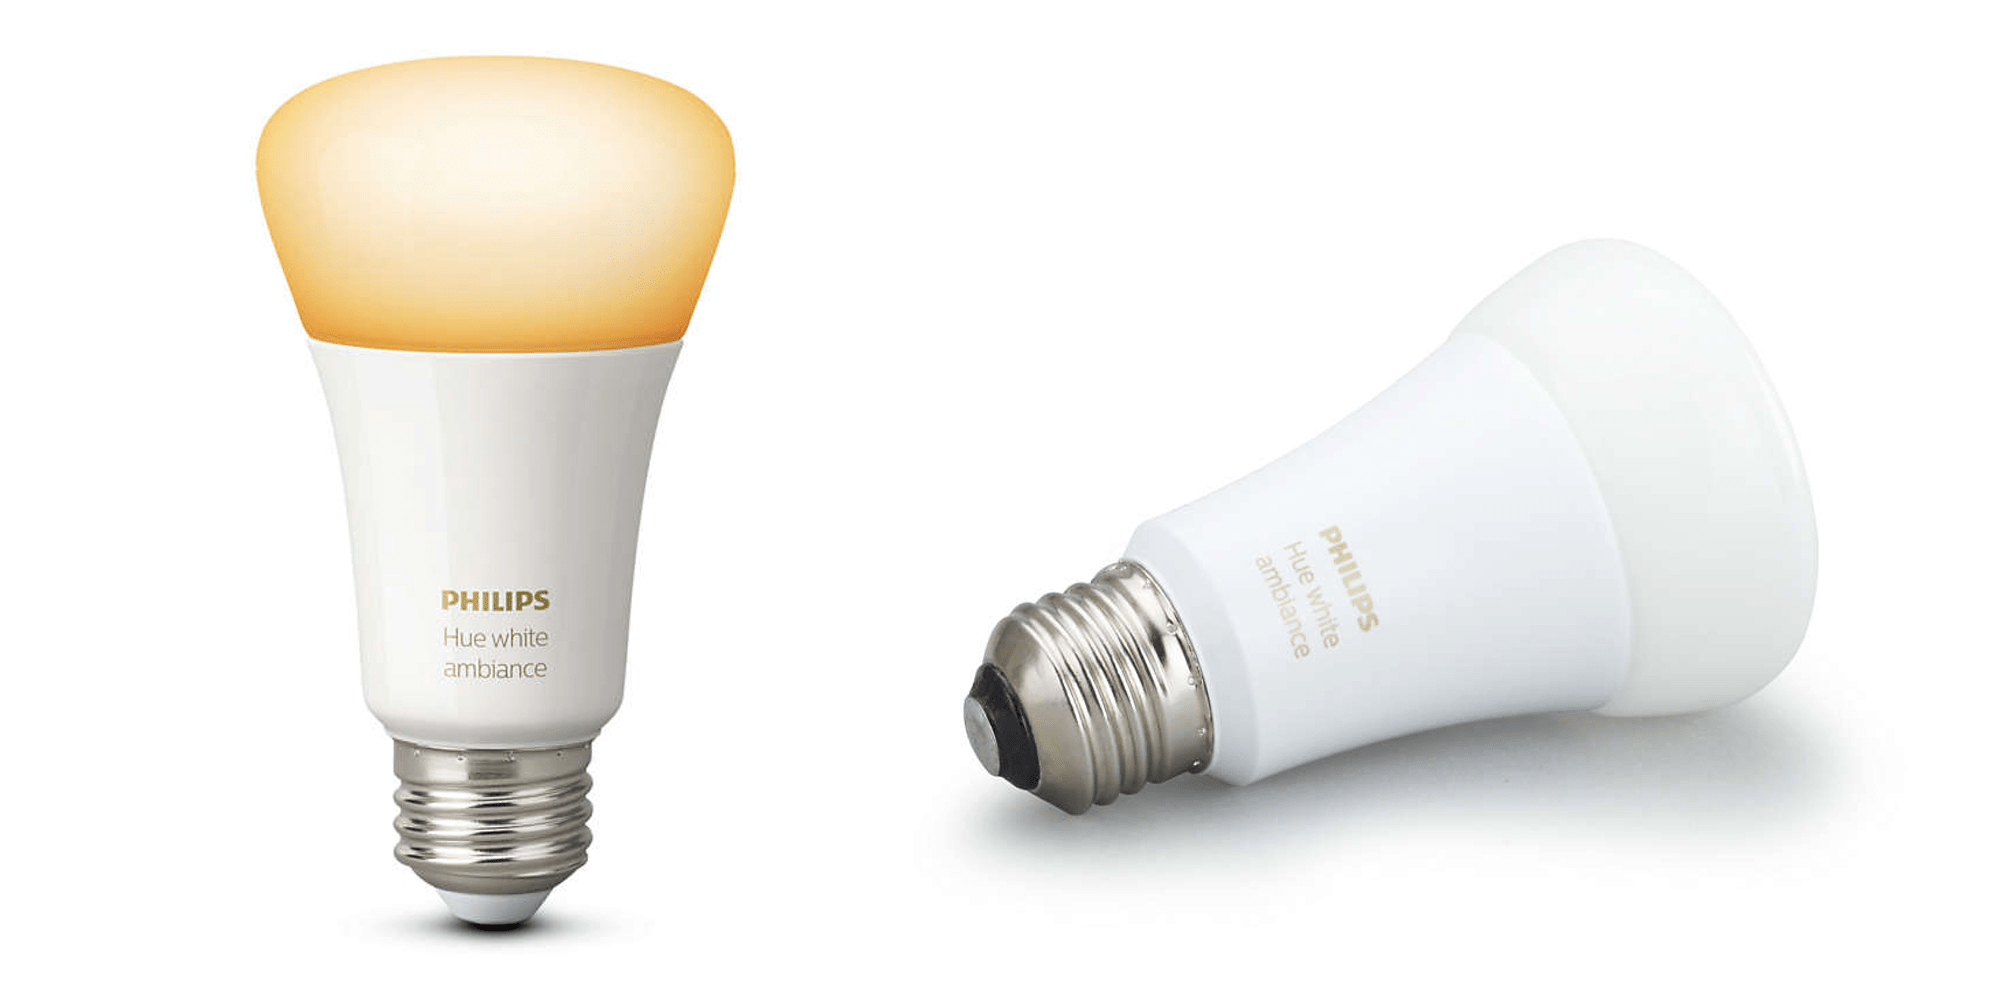 Philips Hue Examples Expand Your Smart Home W The Philips Hue Homekit White